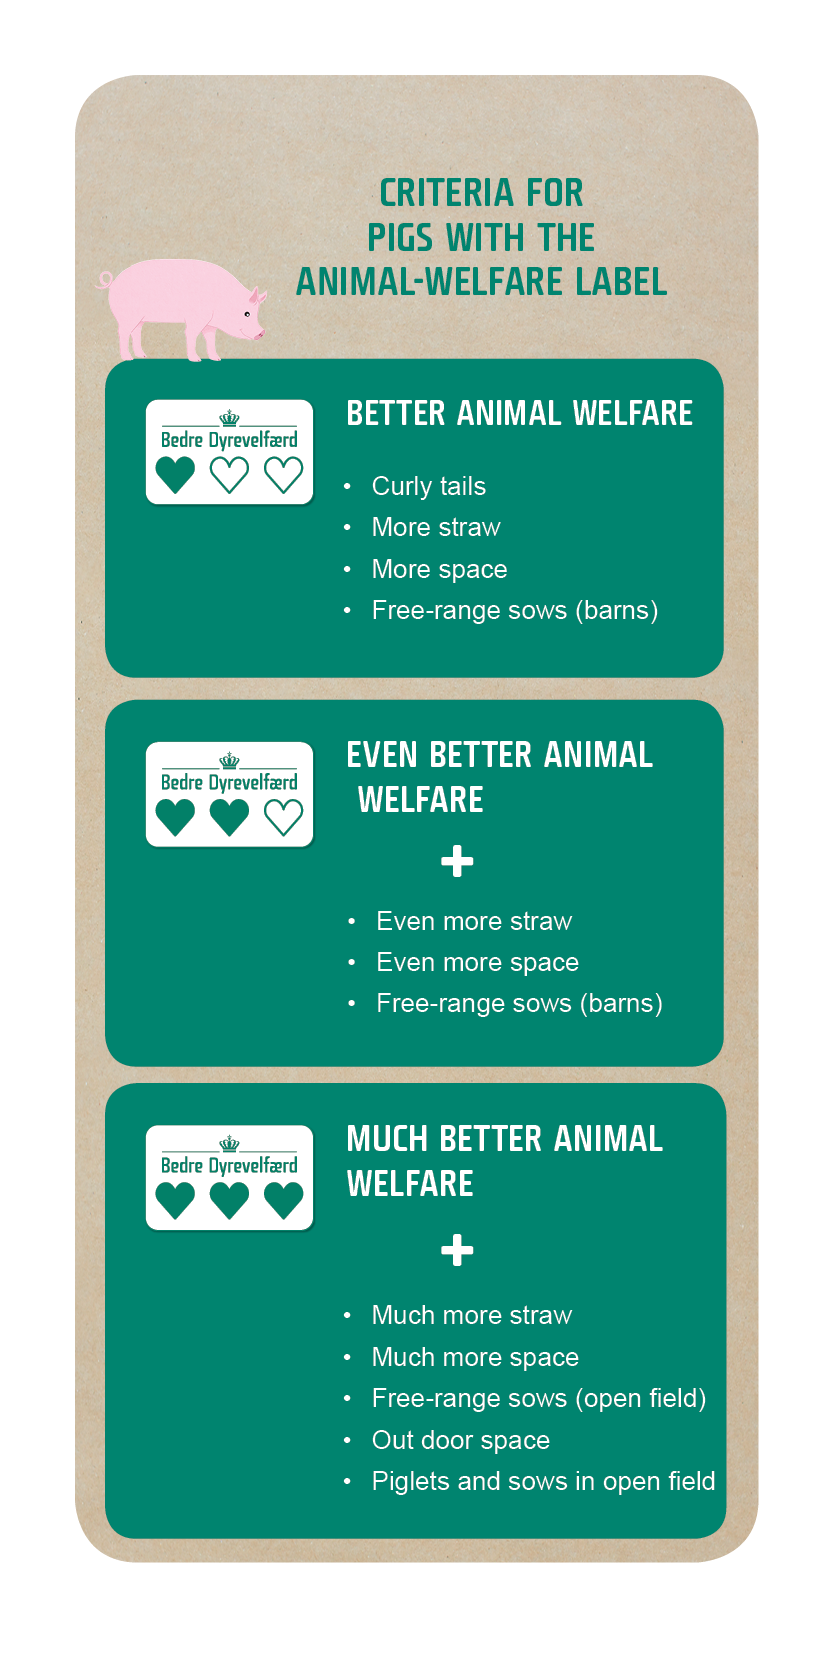 Picture of the animal welfare label criterie for pigs